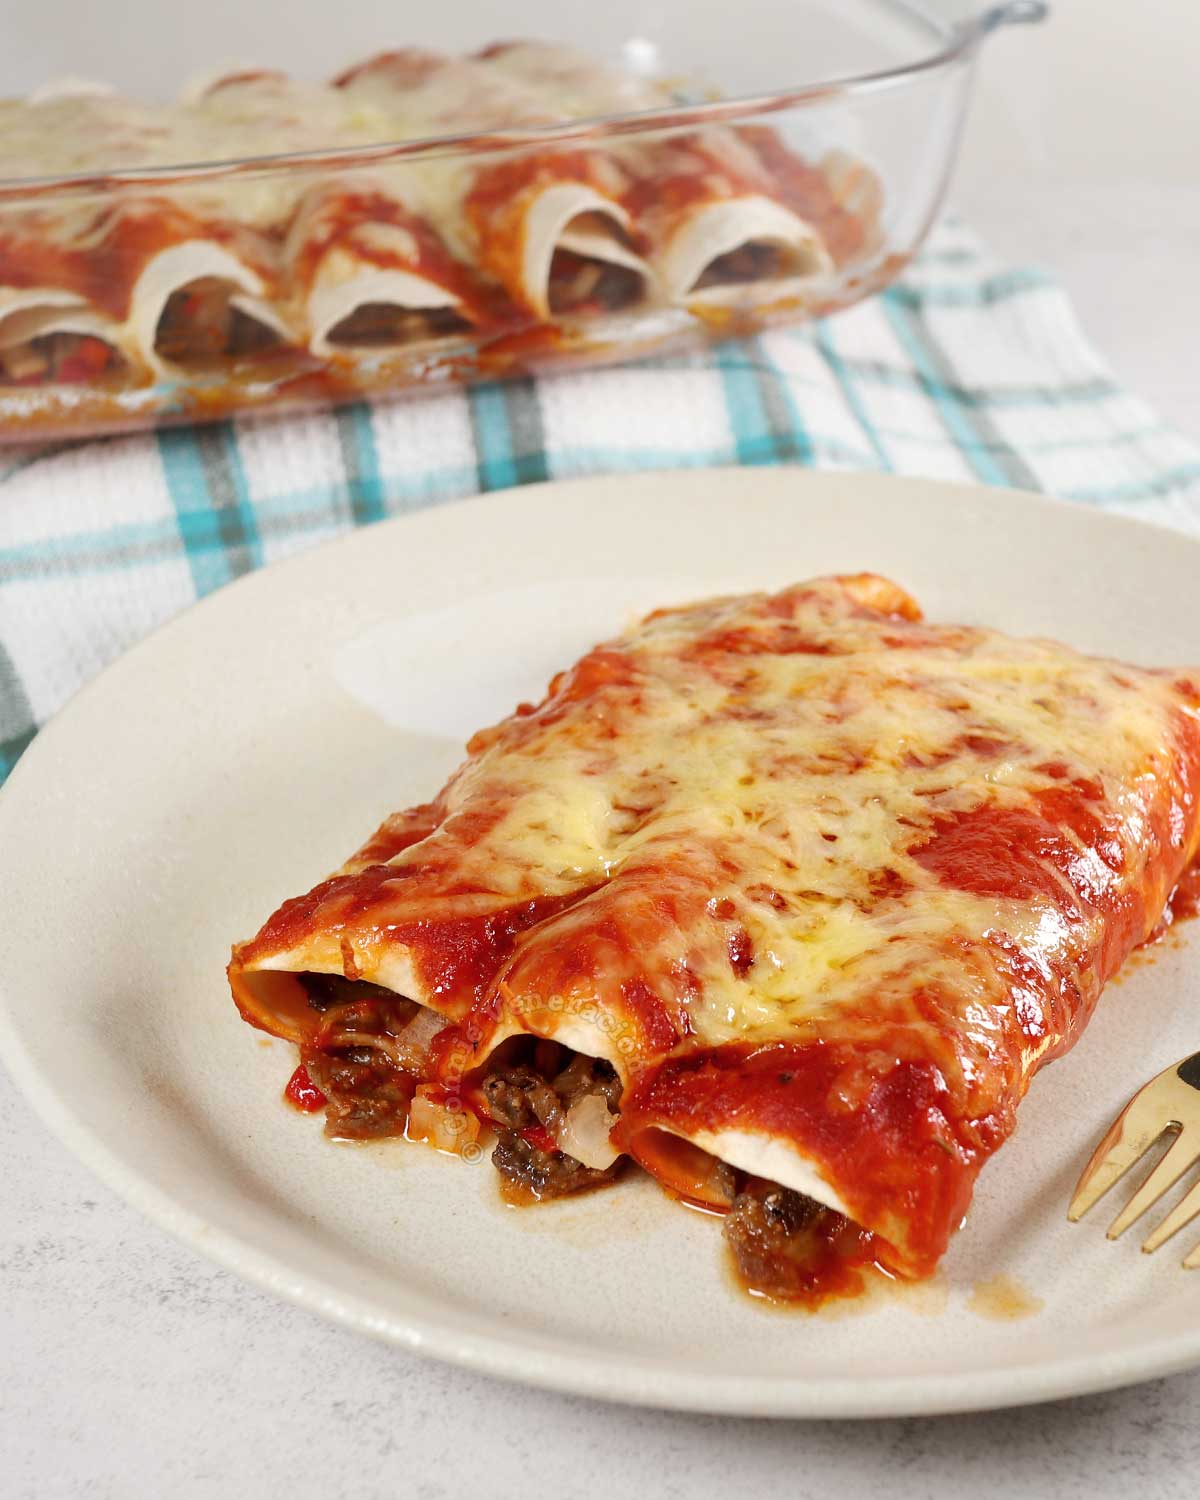 Beef enchiladas on a plate and a tray of more beef enchiladas in background